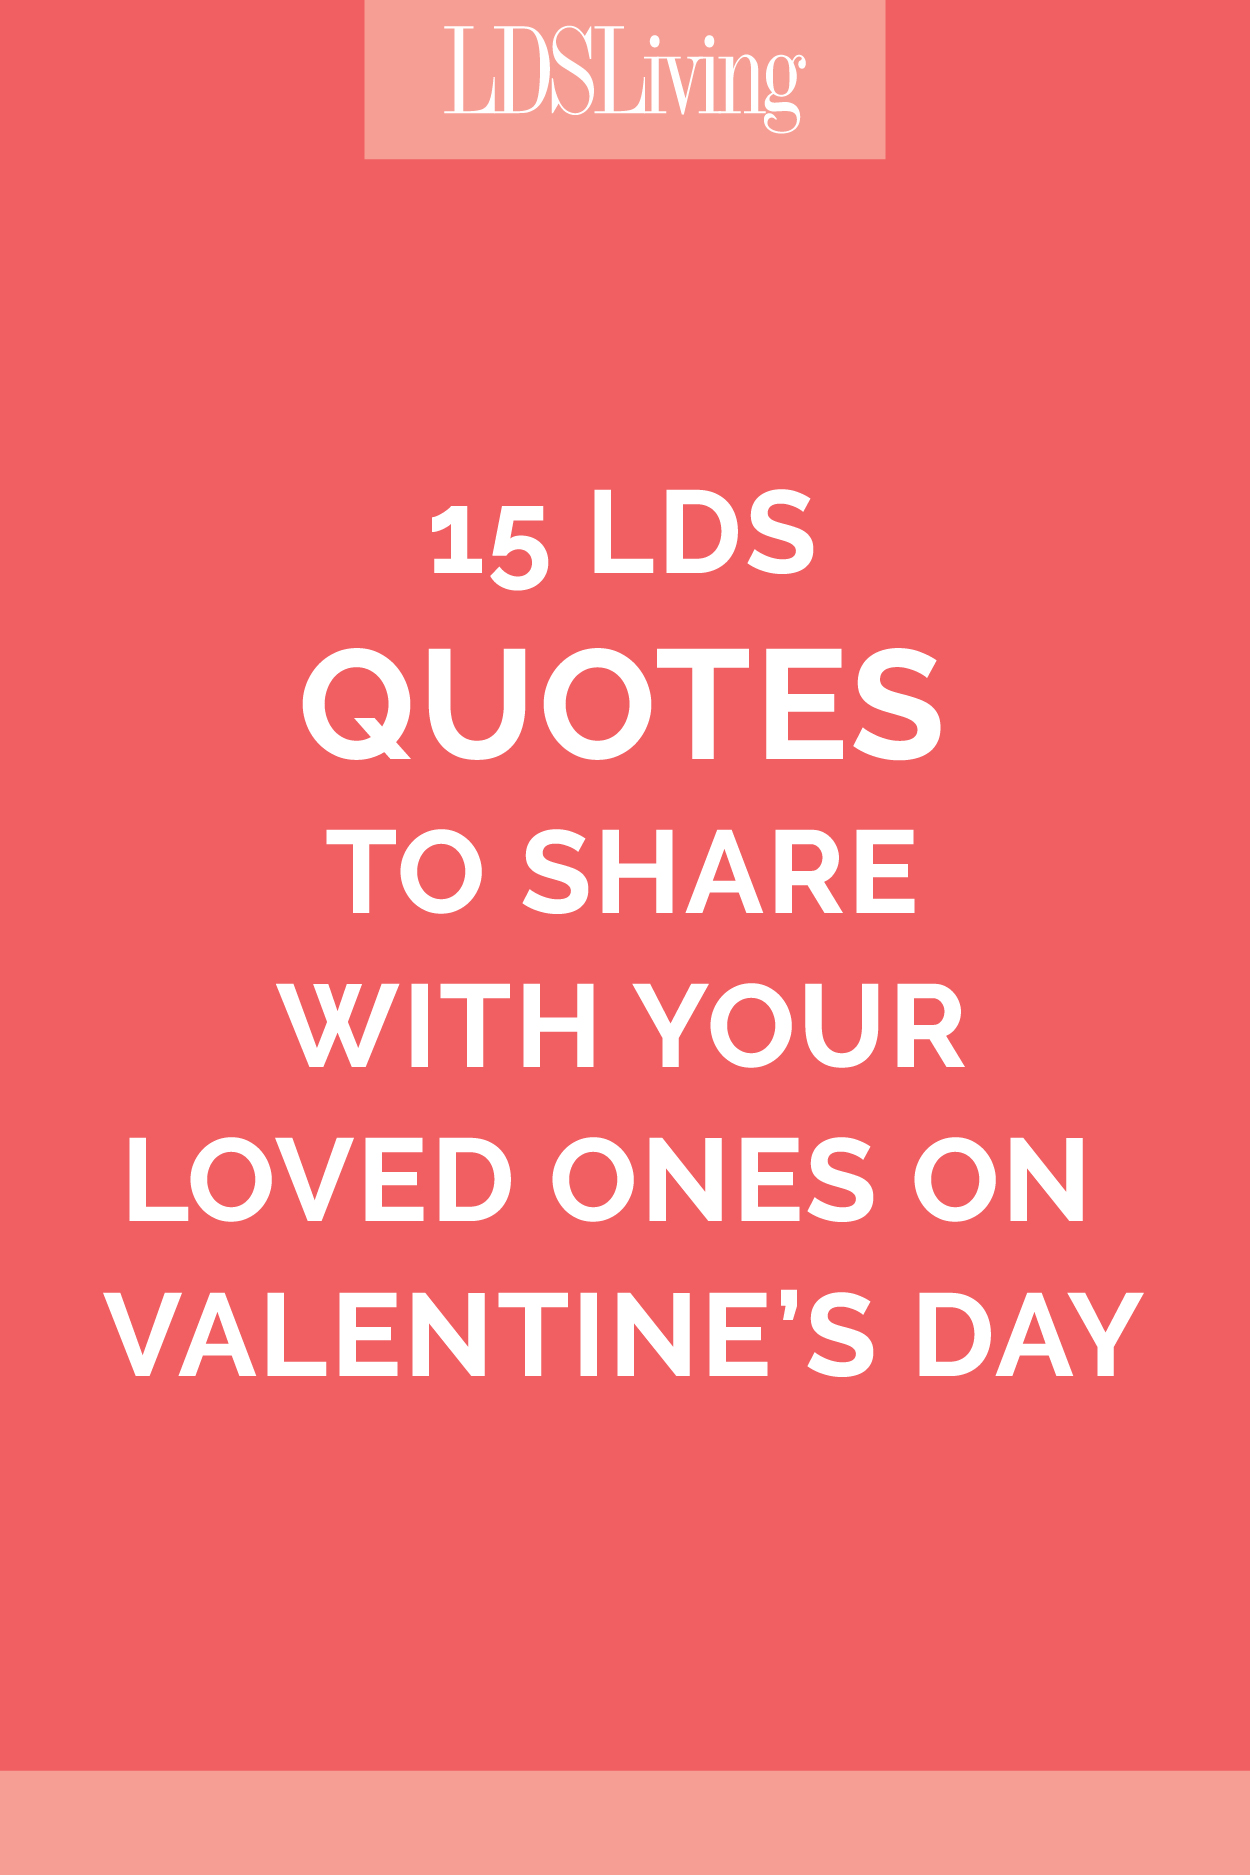 Love quote lds 5973833 - joyfulvoices.info